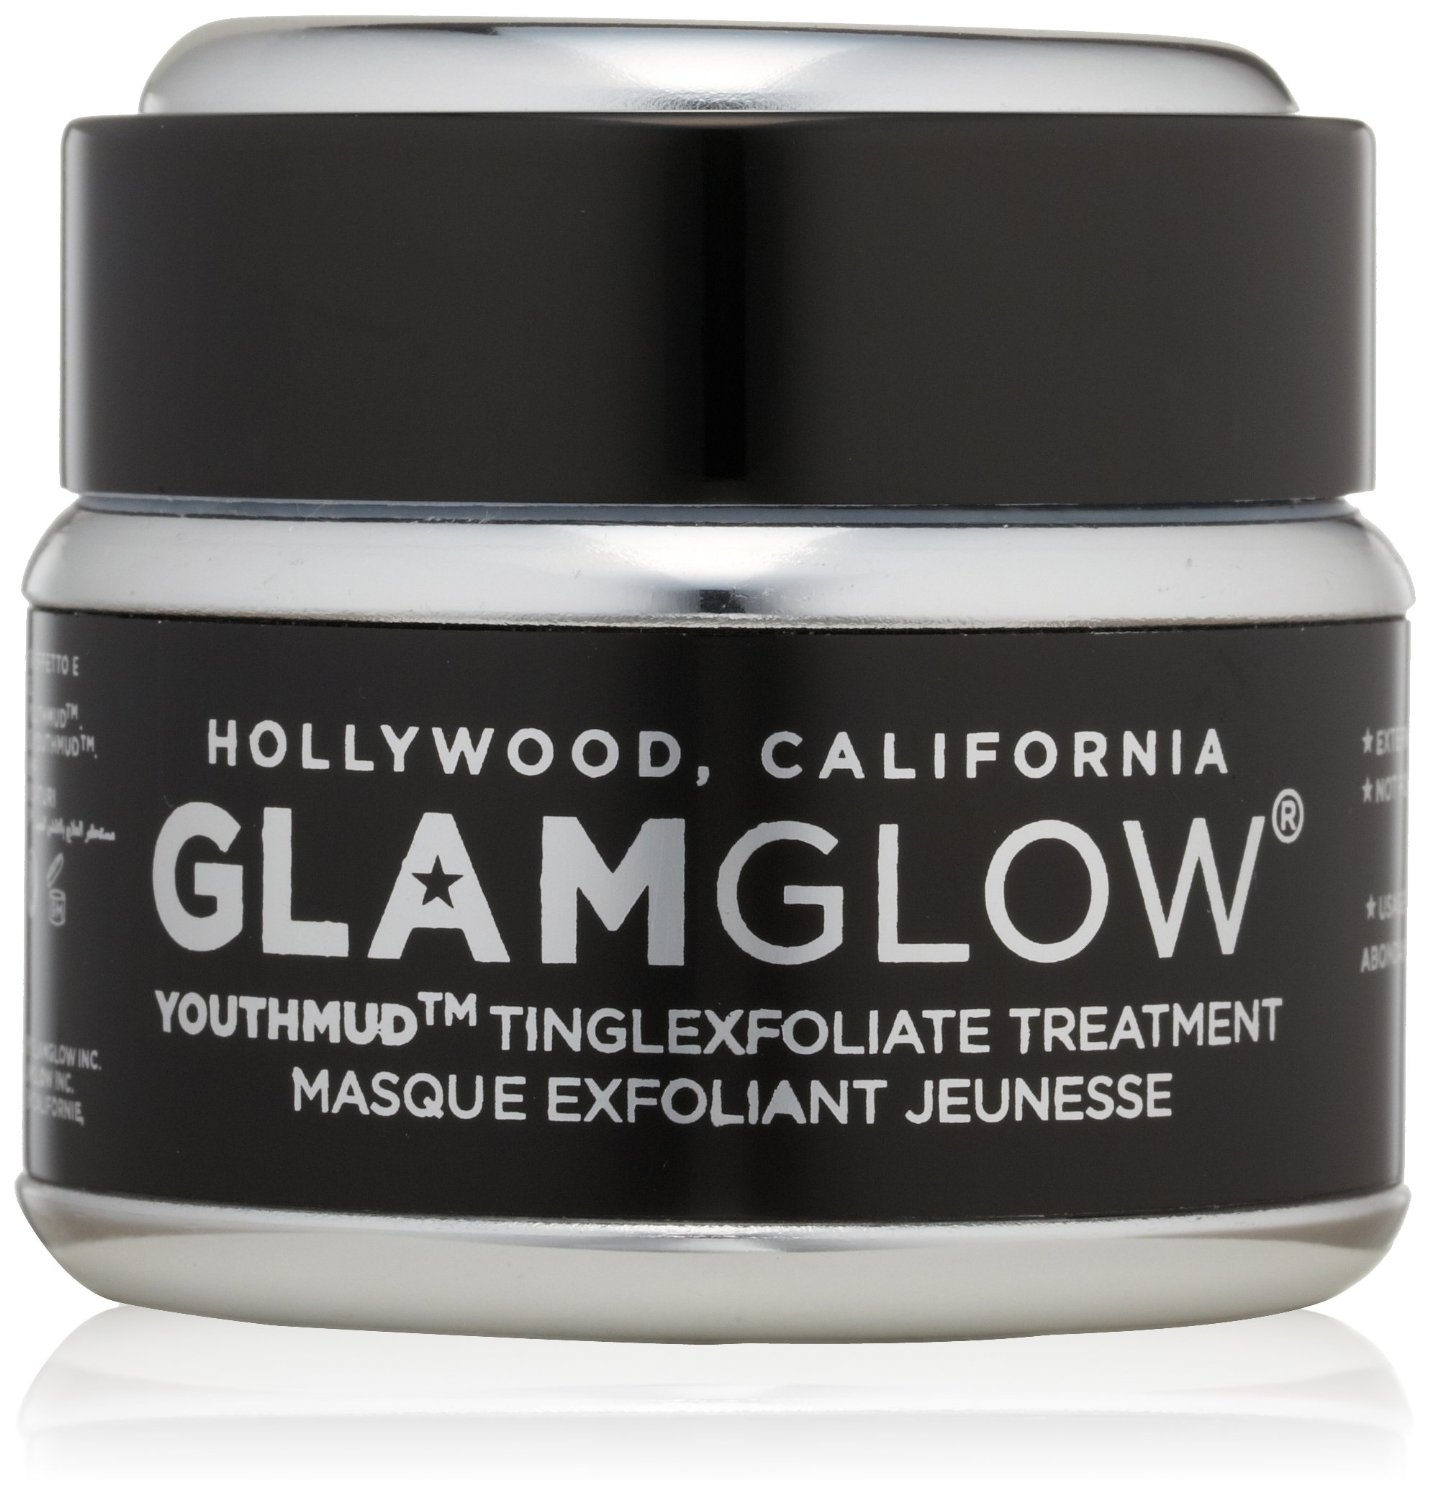 GLAMGLOW Youthmud Tinglexfoliate Treatment, 0.5 oz.